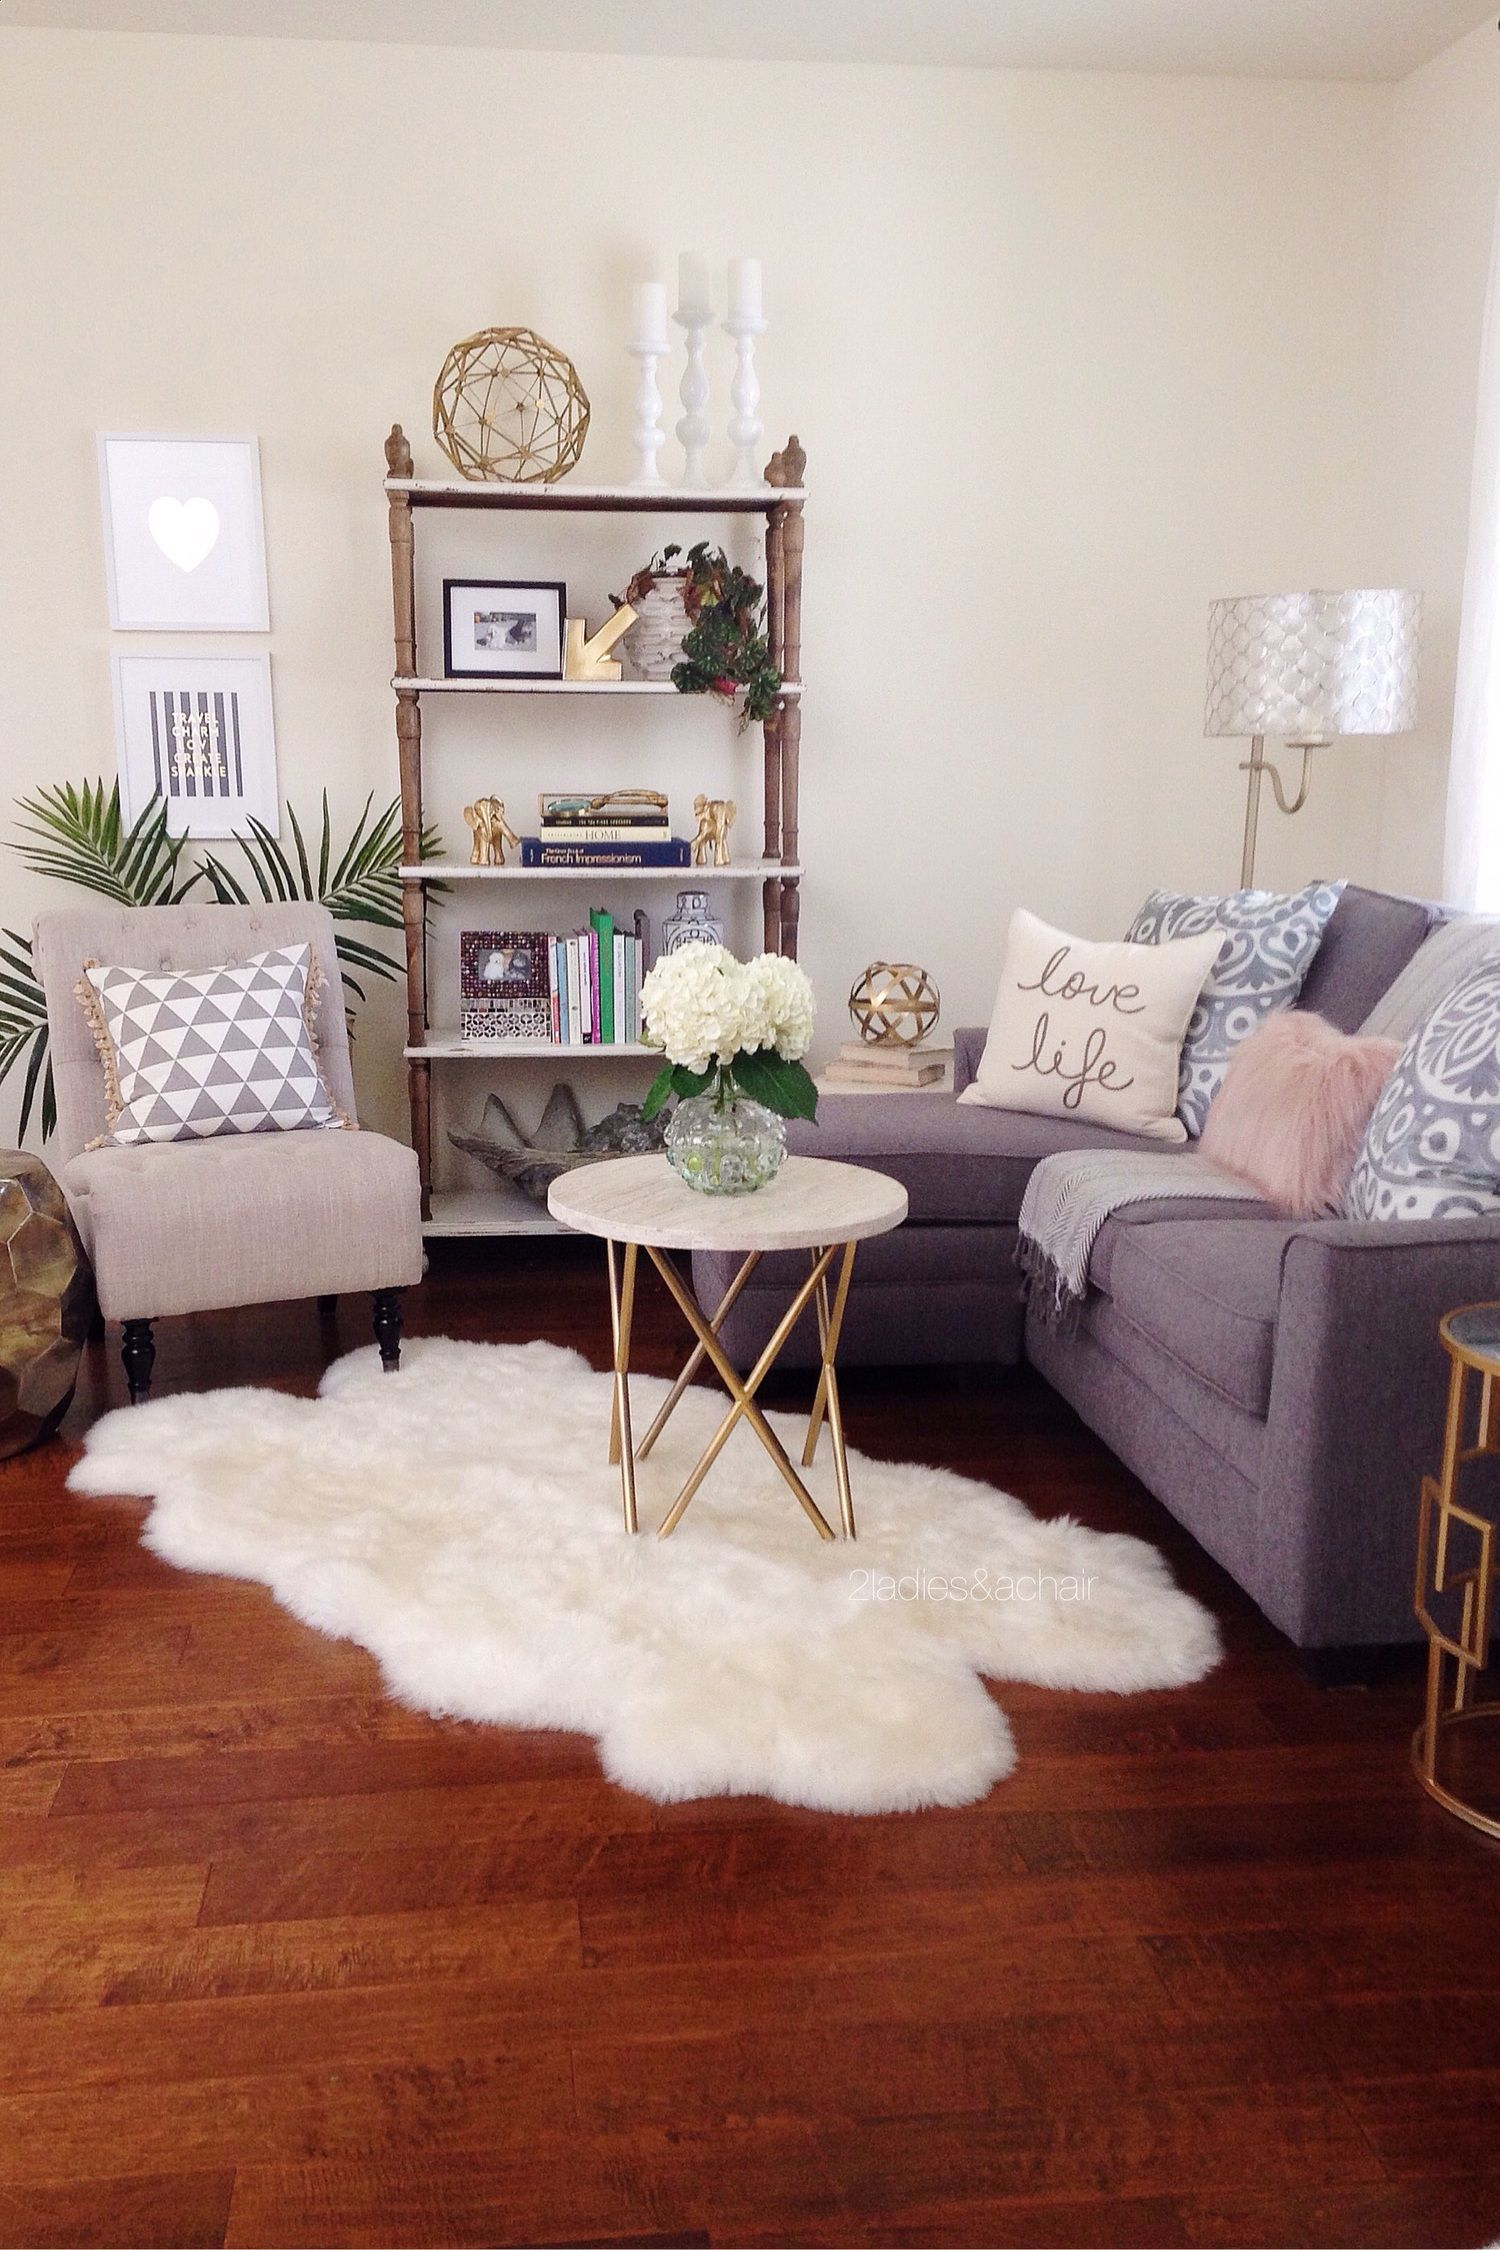 e of my favorite new pillows is this little furry blush pink lumbar throw from HomeGoods They have so many different styles of pillows to choose from